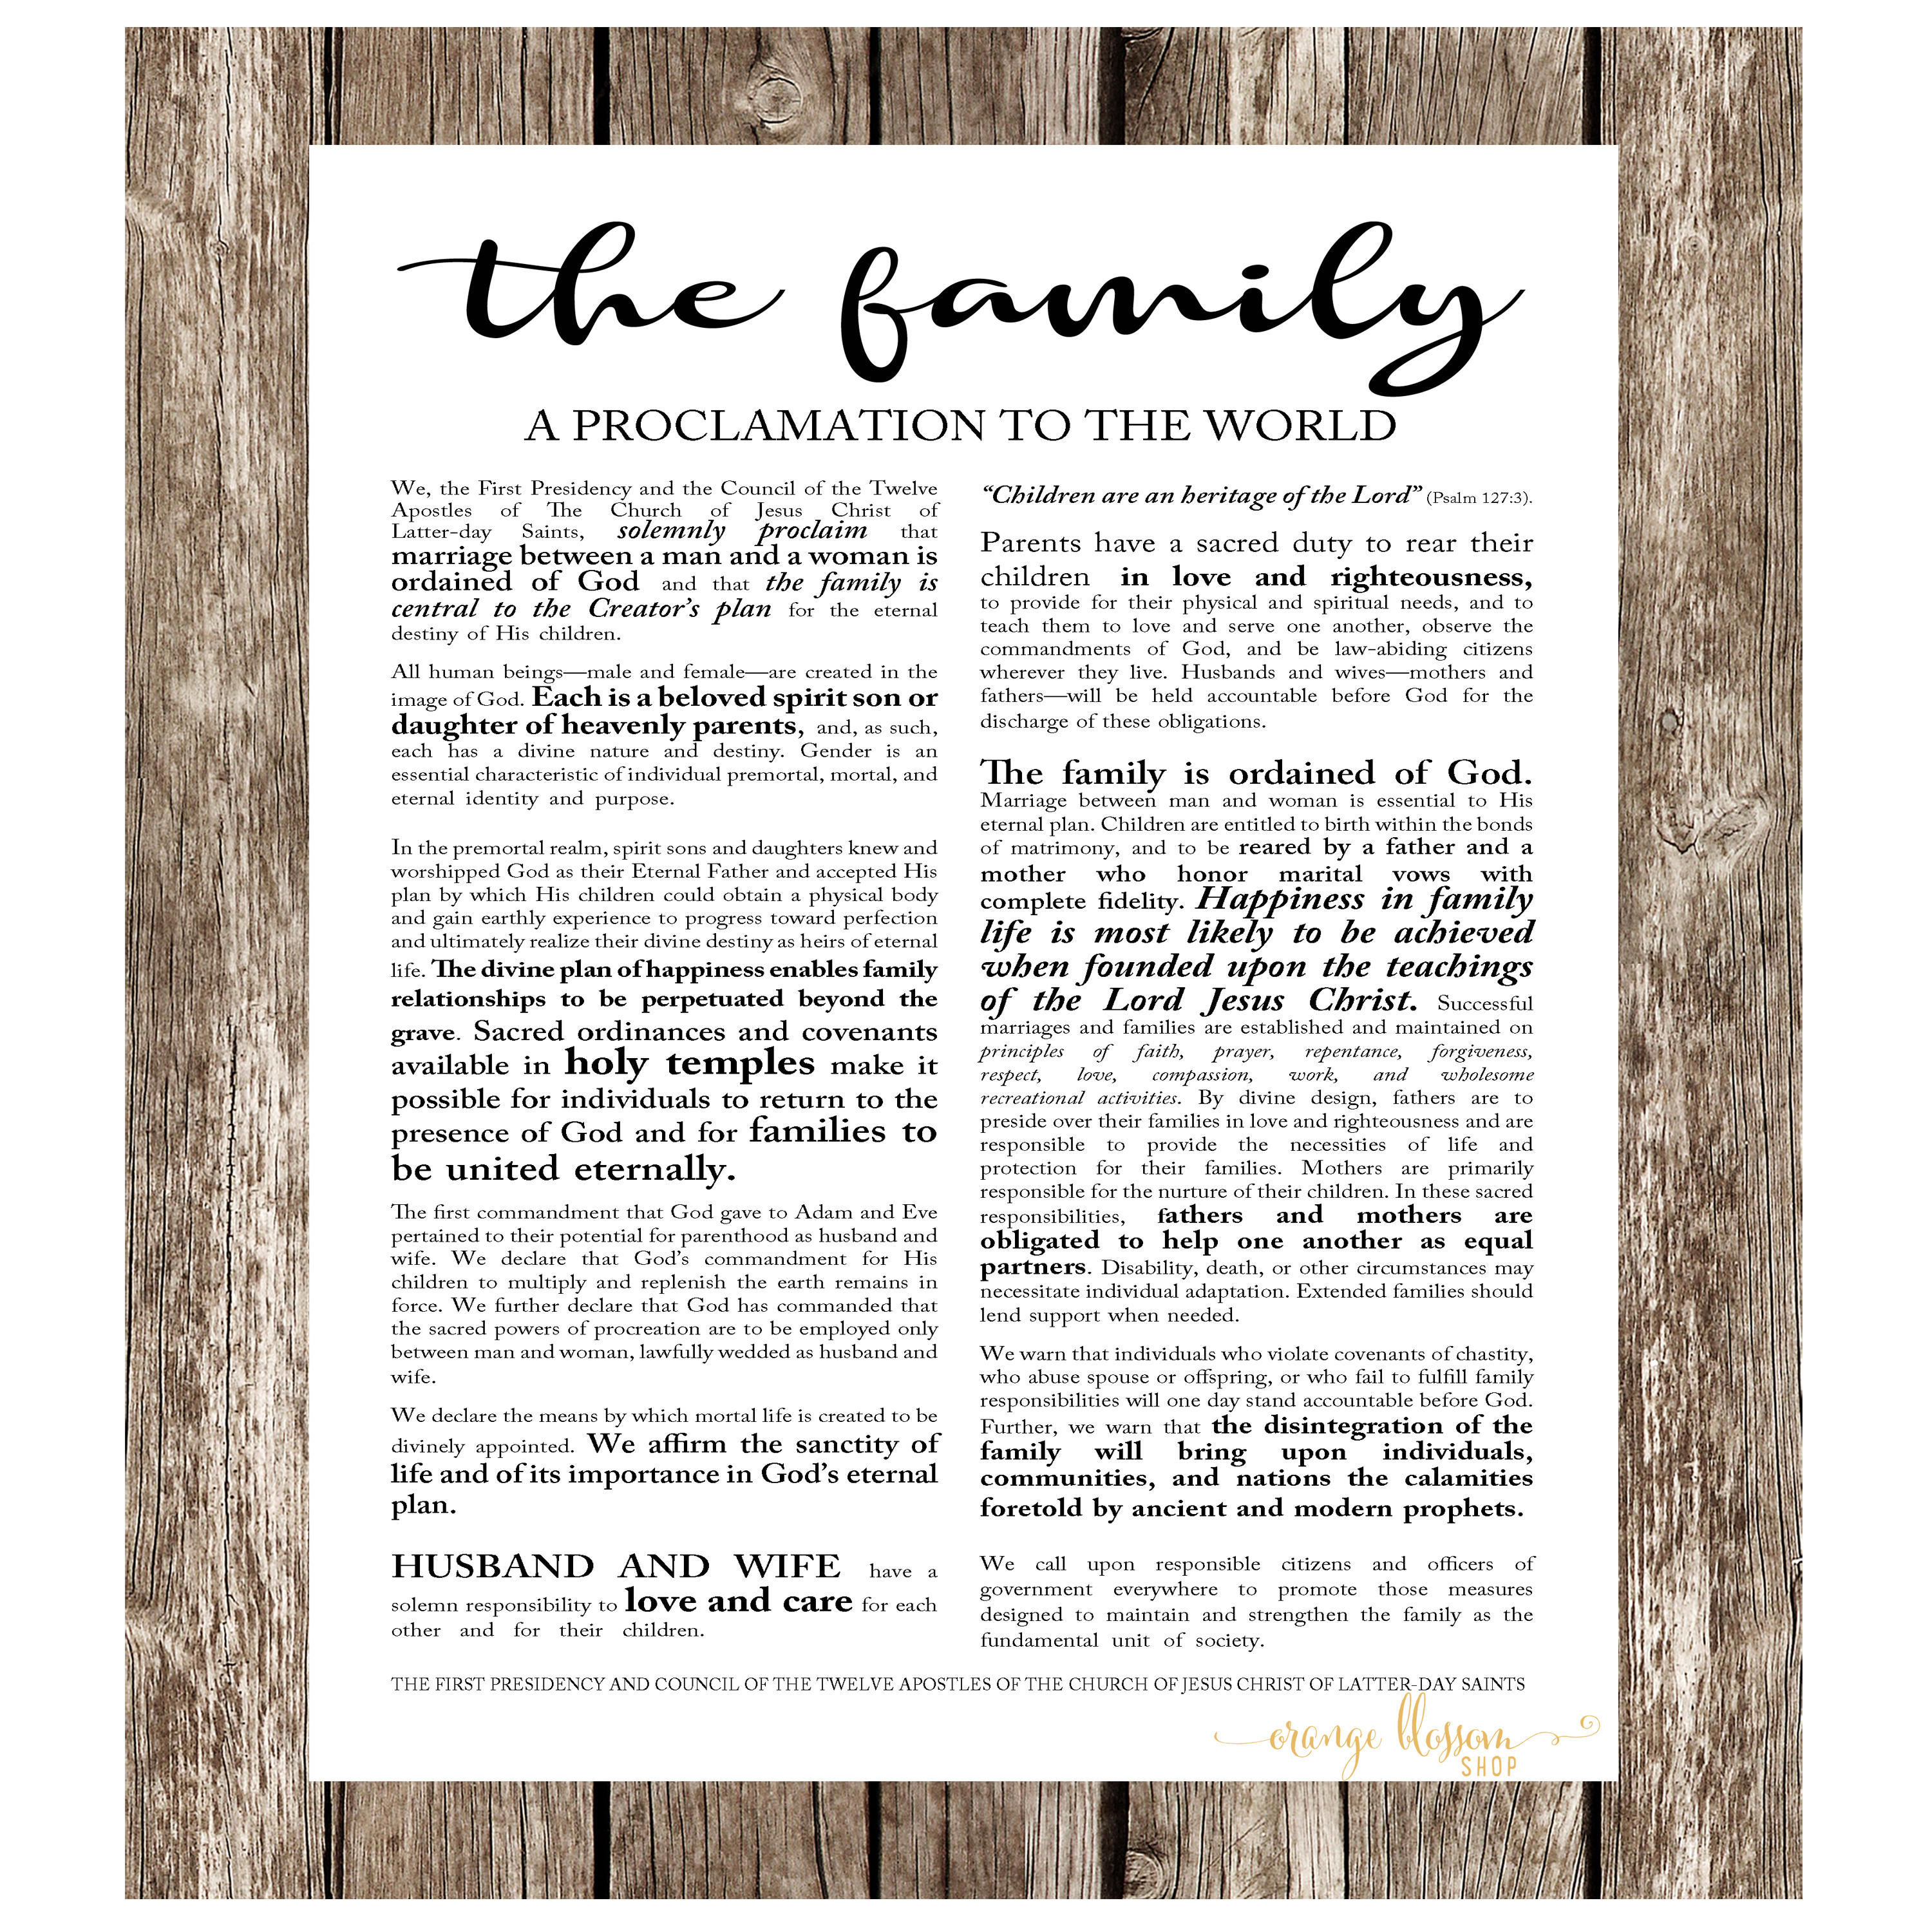 picture relating to The Family a Proclamation to the World Printable identified as LDS Spouse and children Proclamation, Electronic Record 18x24, 16x20, 11x14, 8x10, LDS Printable, Proclamation towards the World-wide